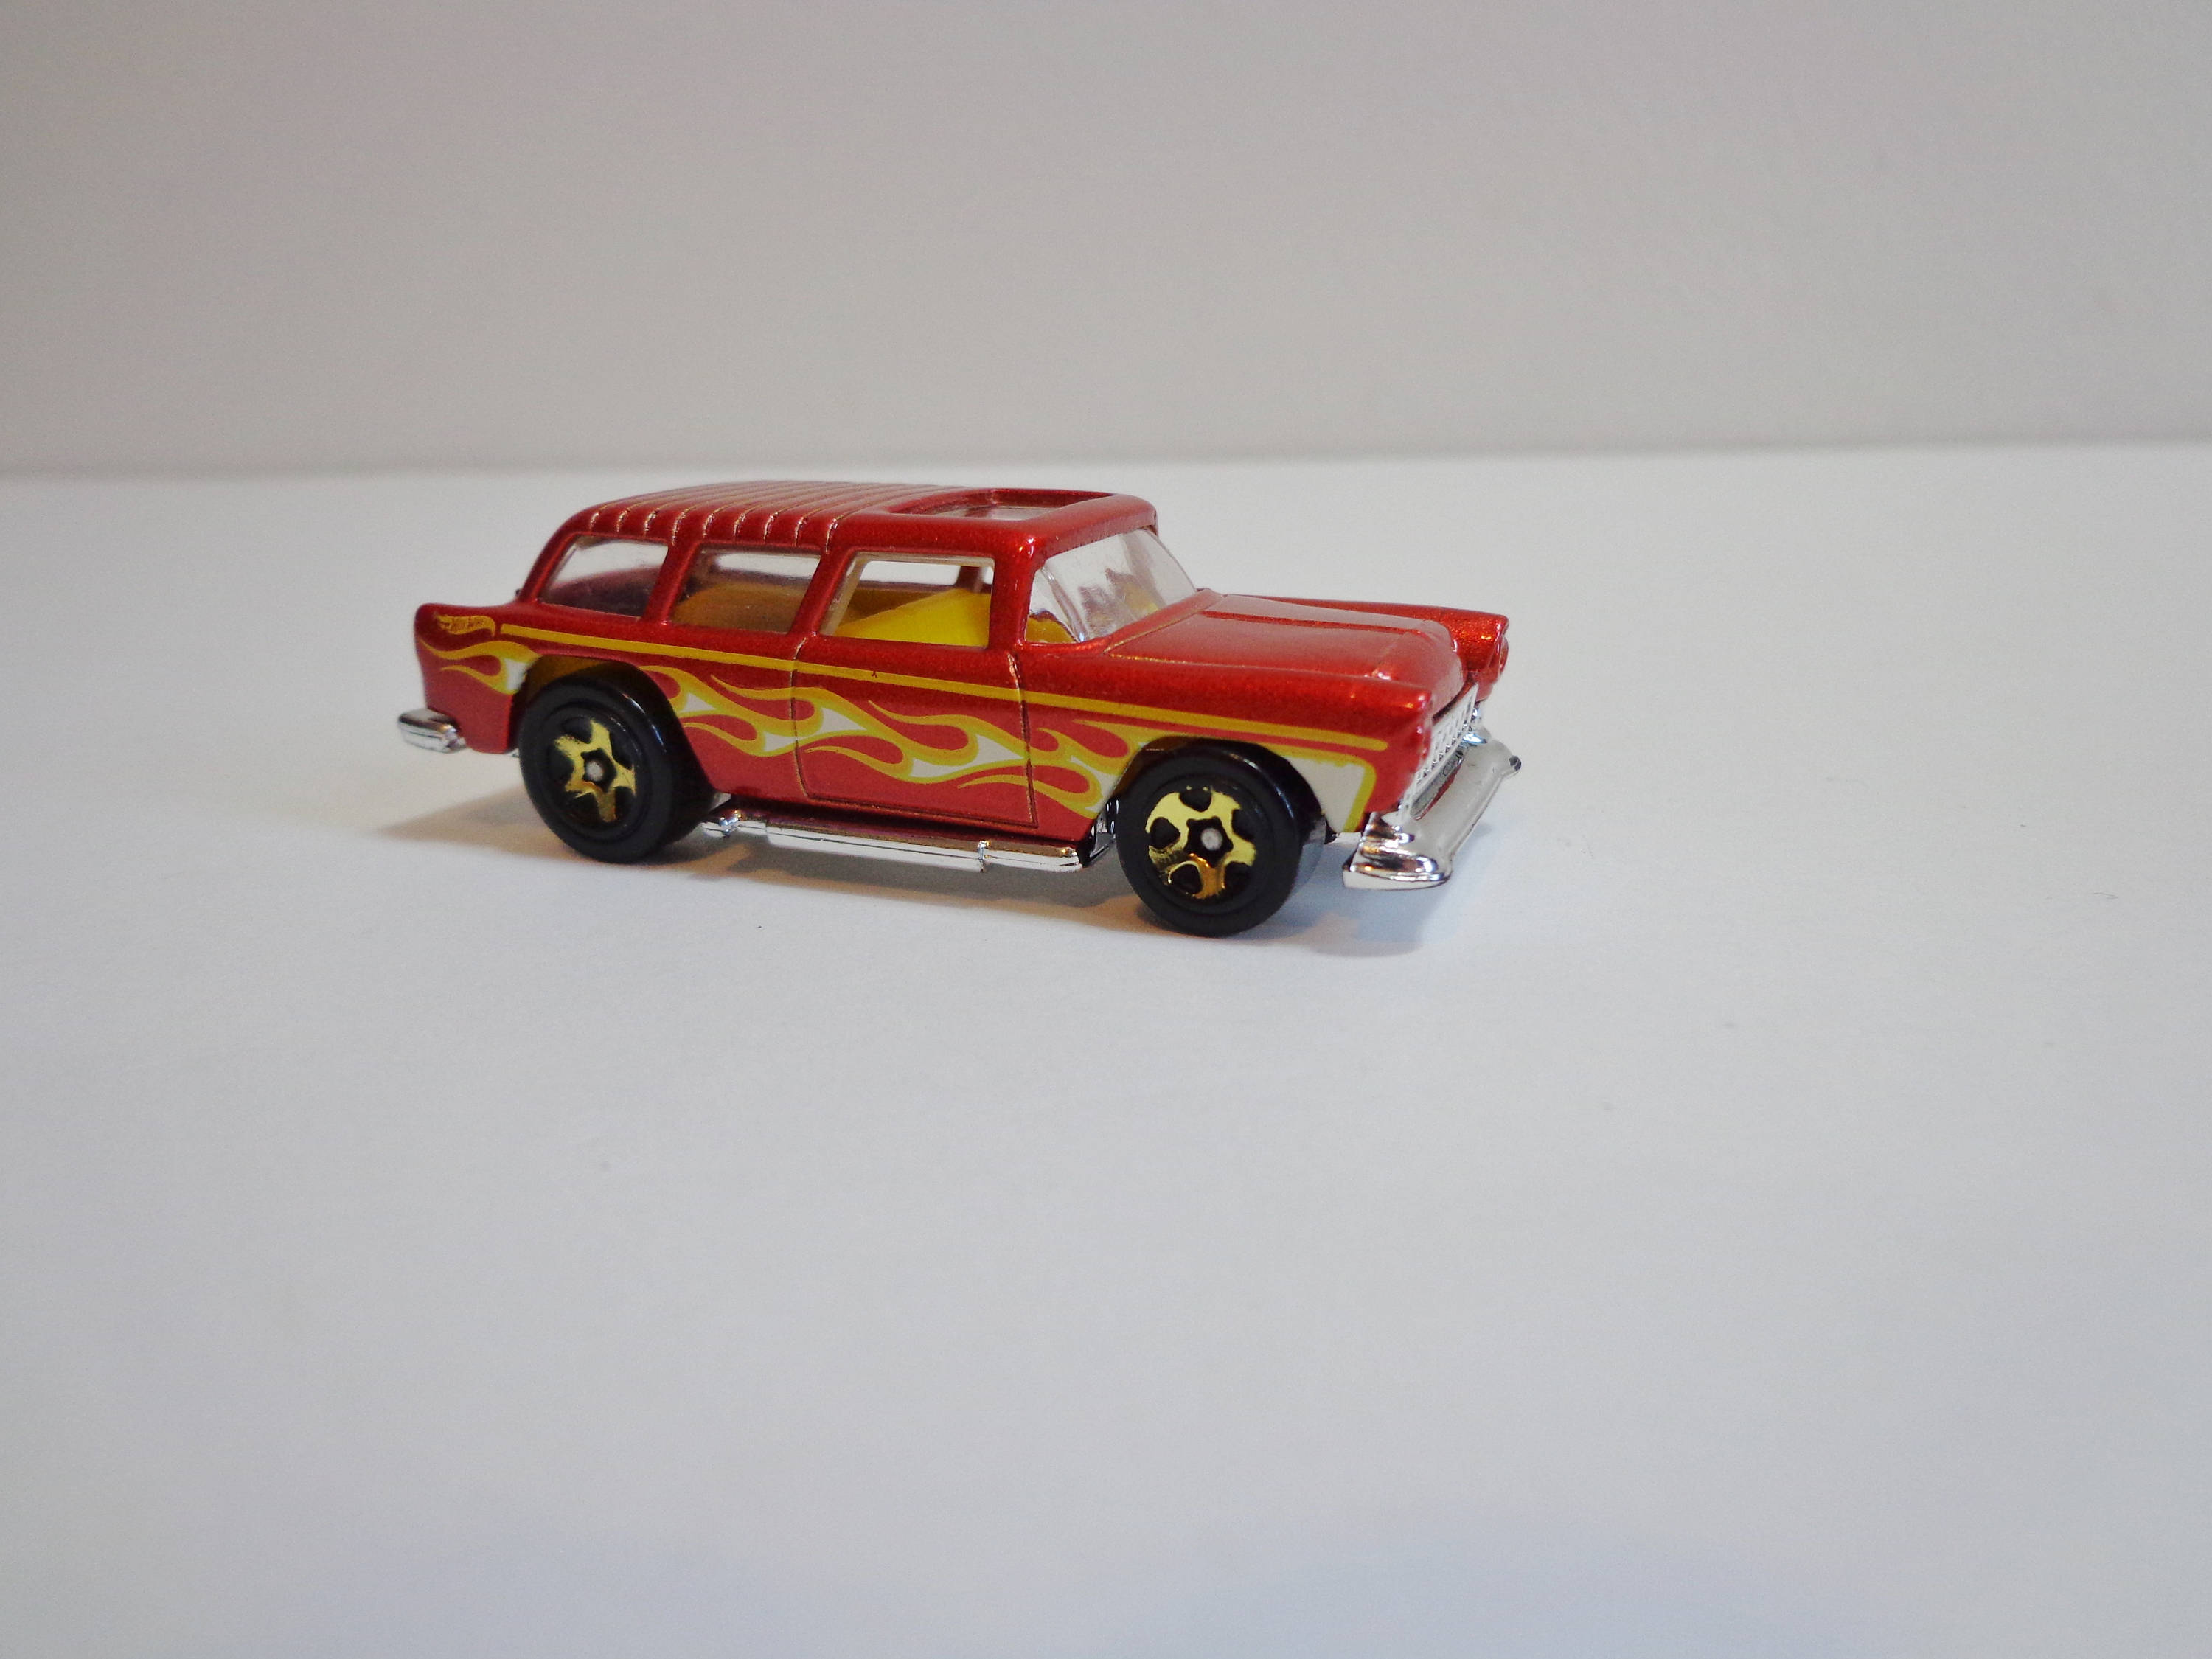 Vintage Hot Wheels Collectible 1969 Red Chevy Nomad with